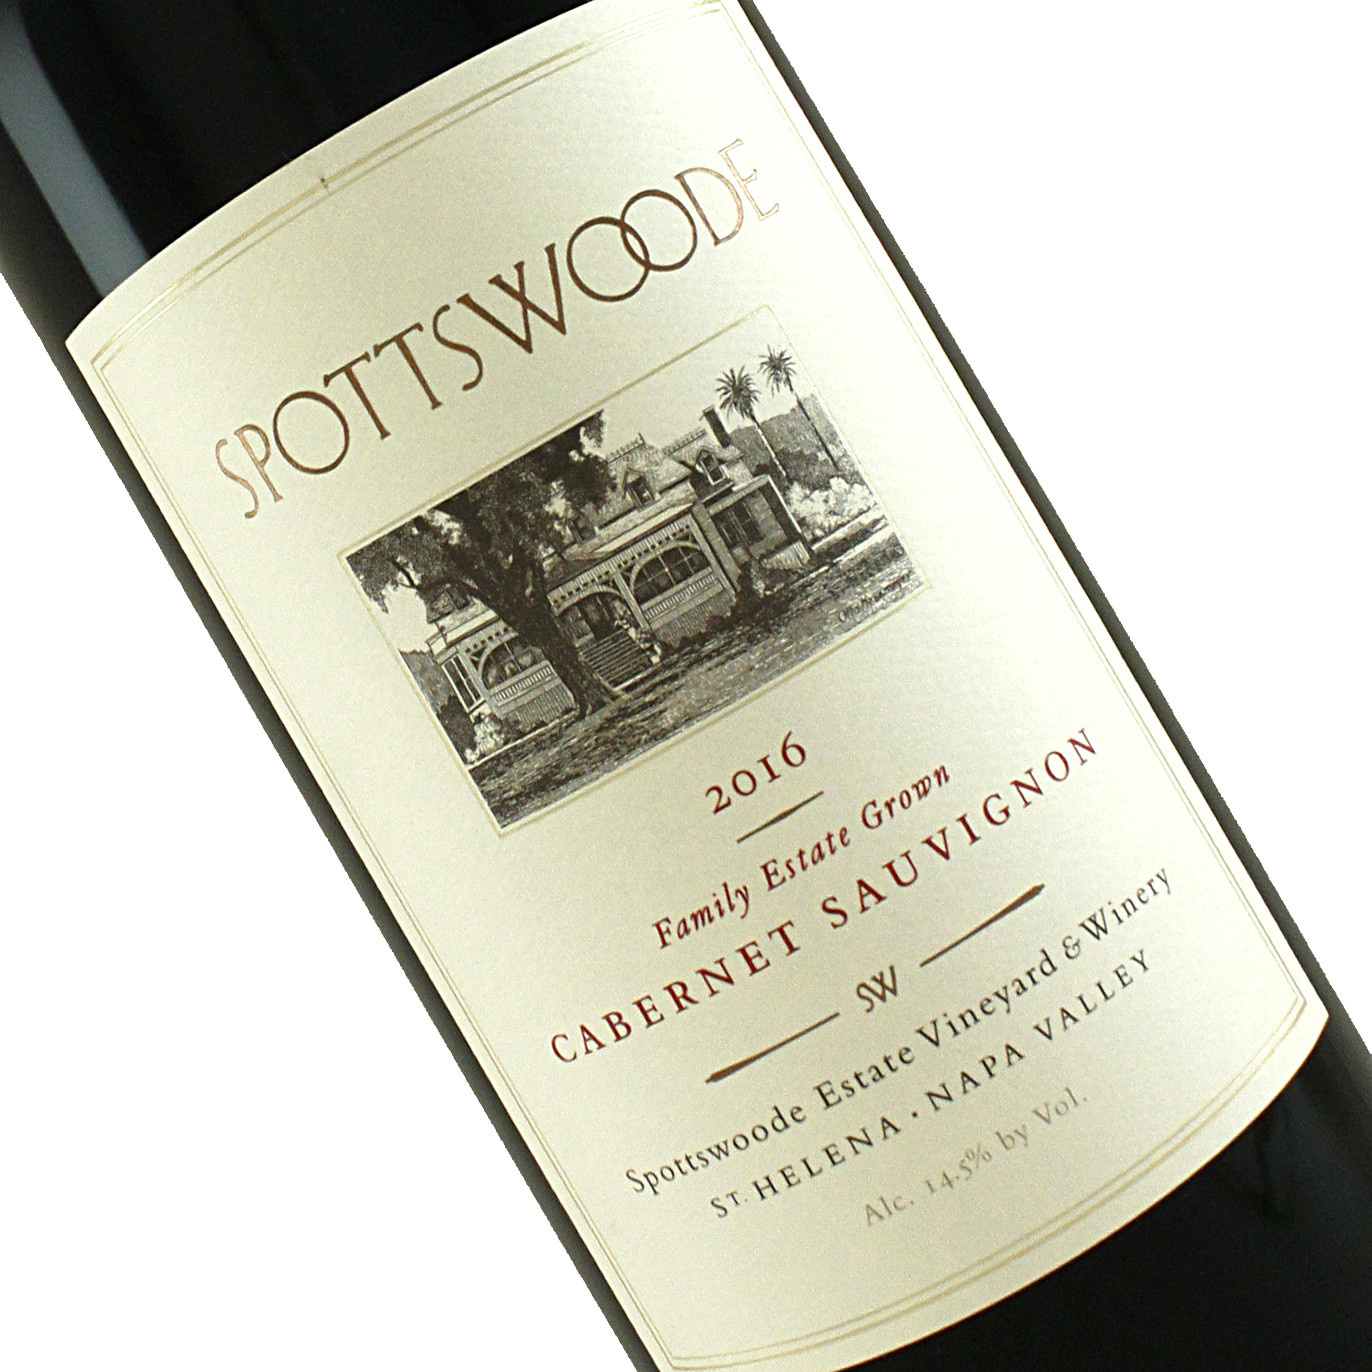 Spottswoode 2016 Family Estate Grown Cabernet Sauvignon, St. Helena, Napa Valley